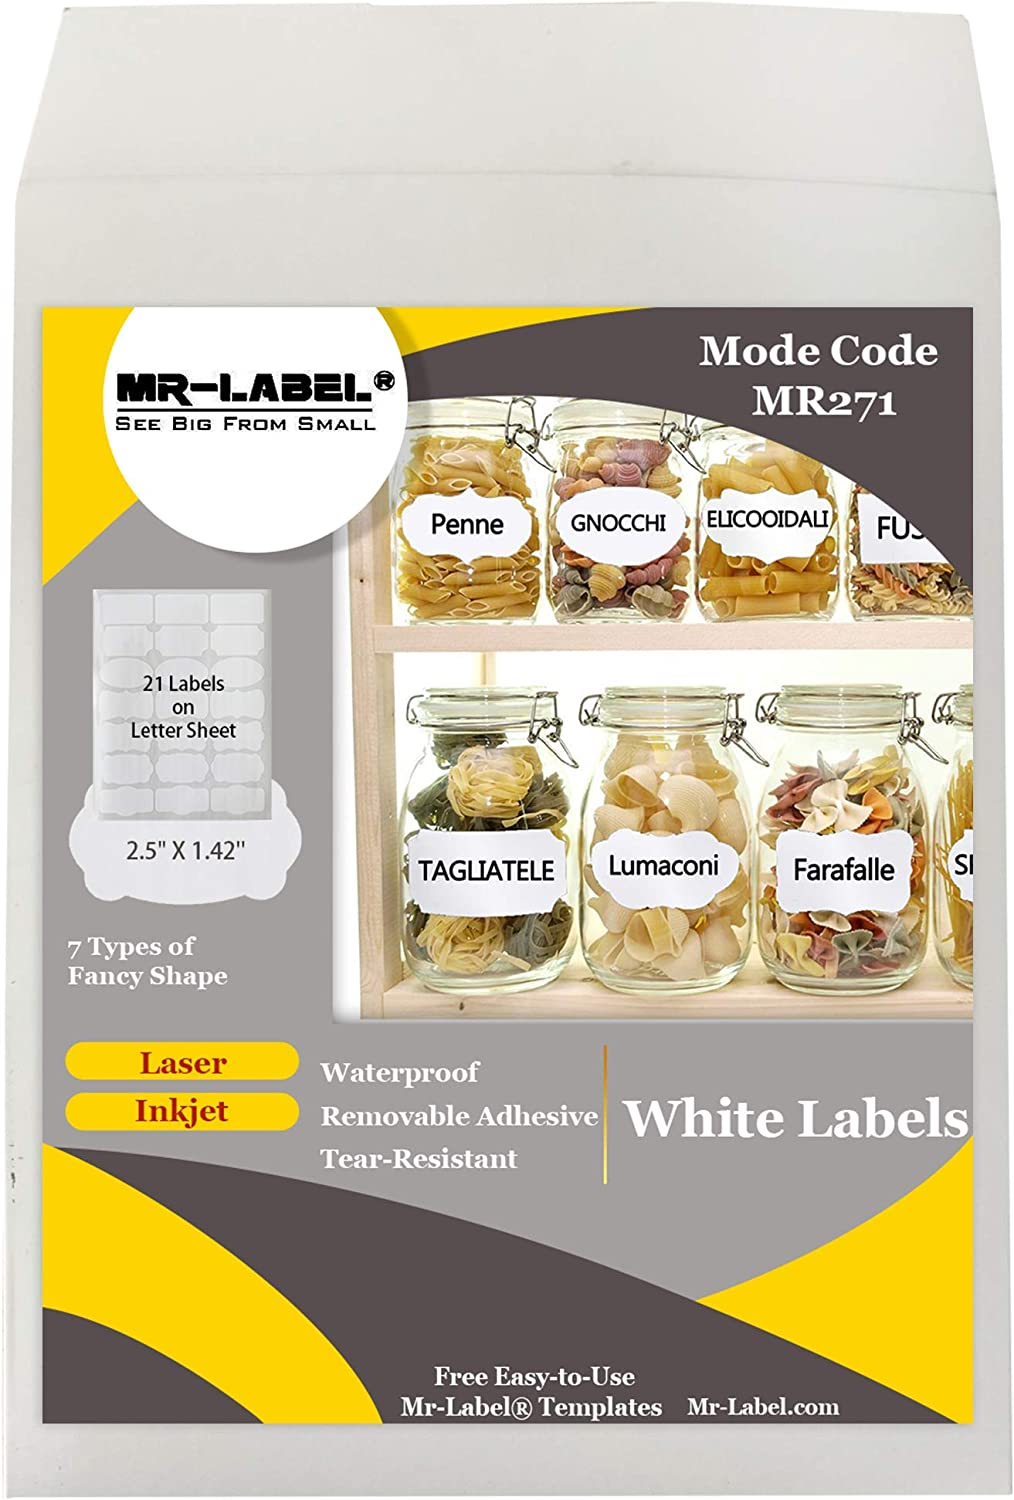 Mr-Label 7 Types of Fancy Shape White Waterproof Adhesive Labels on Letter Sheet - Tear-Resistant Bottle Stickers for Kitchen Use - Inkjet & Laser Printer Support (10 Sheets/Totally 210 Labels)